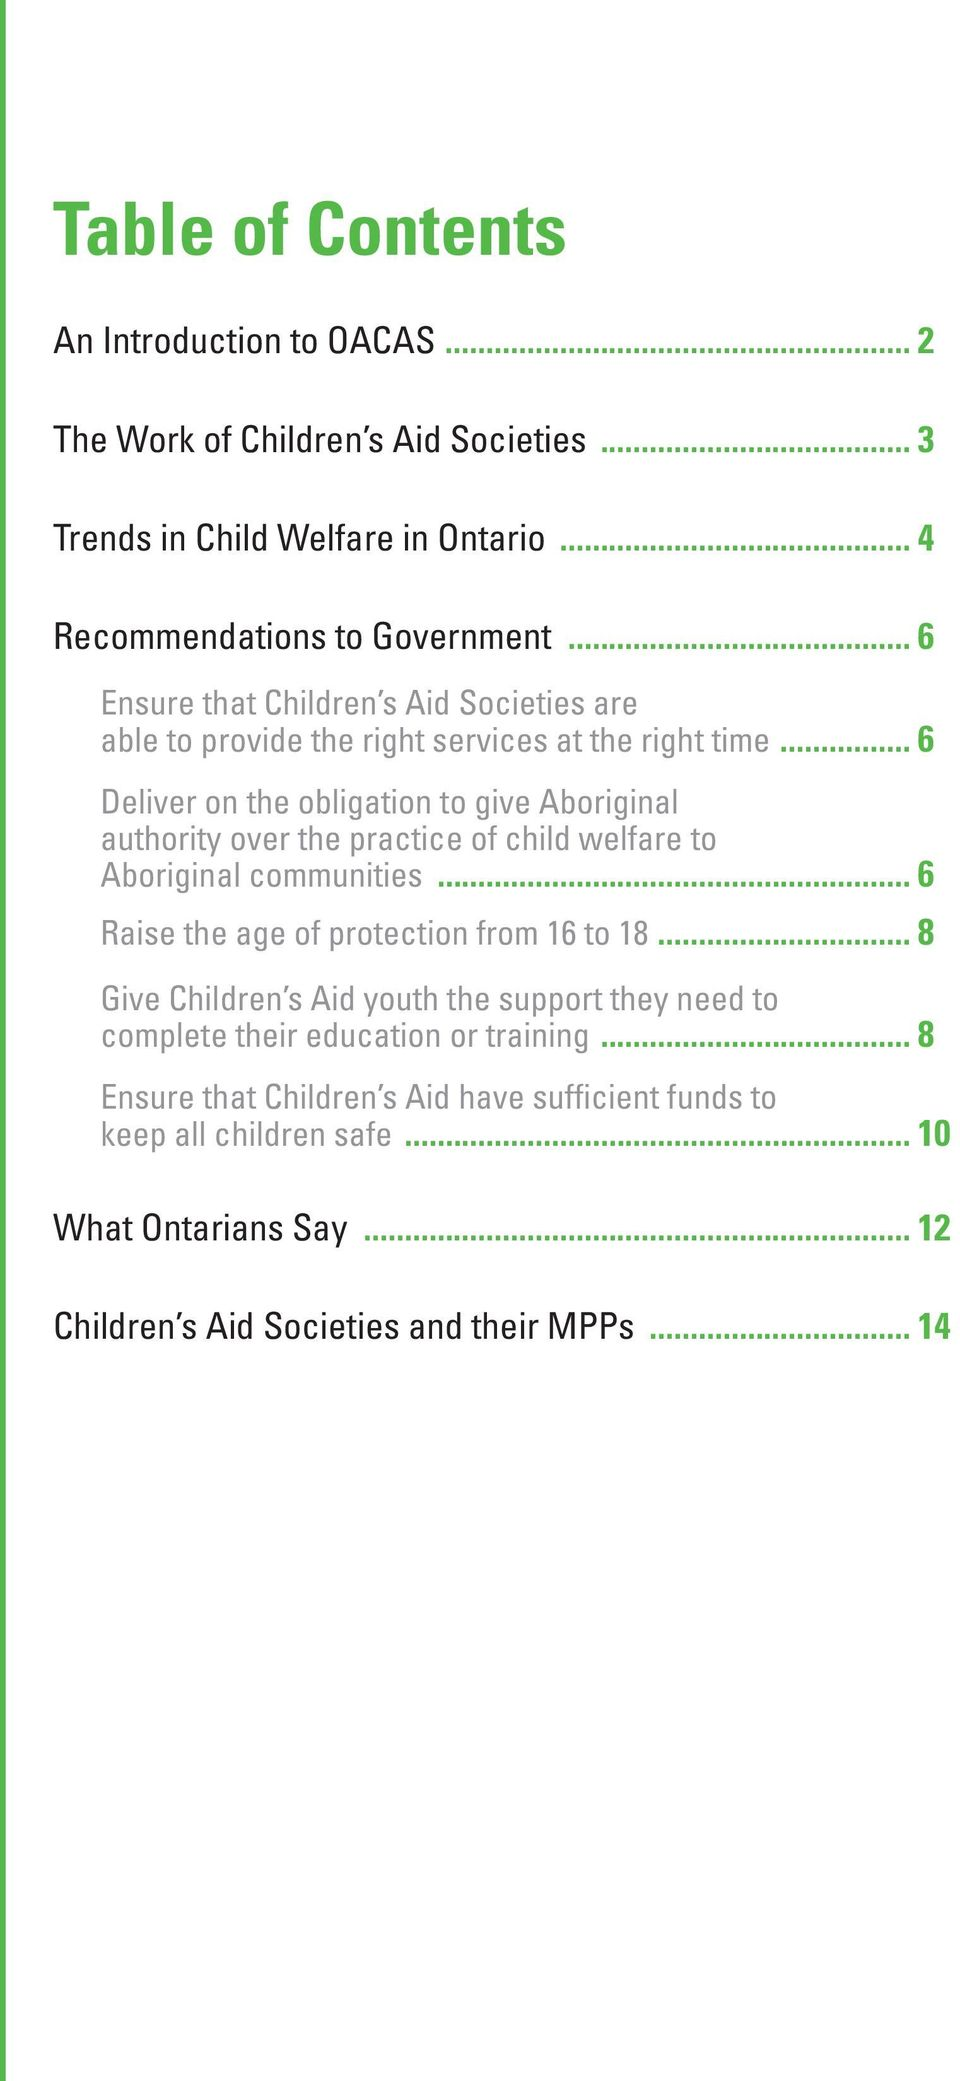 .. 6 Deliver on the obligation to give Aboriginal authority over the practice of child welfare to Aboriginal communities... 6 Raise the age of protection from 16 to 18.